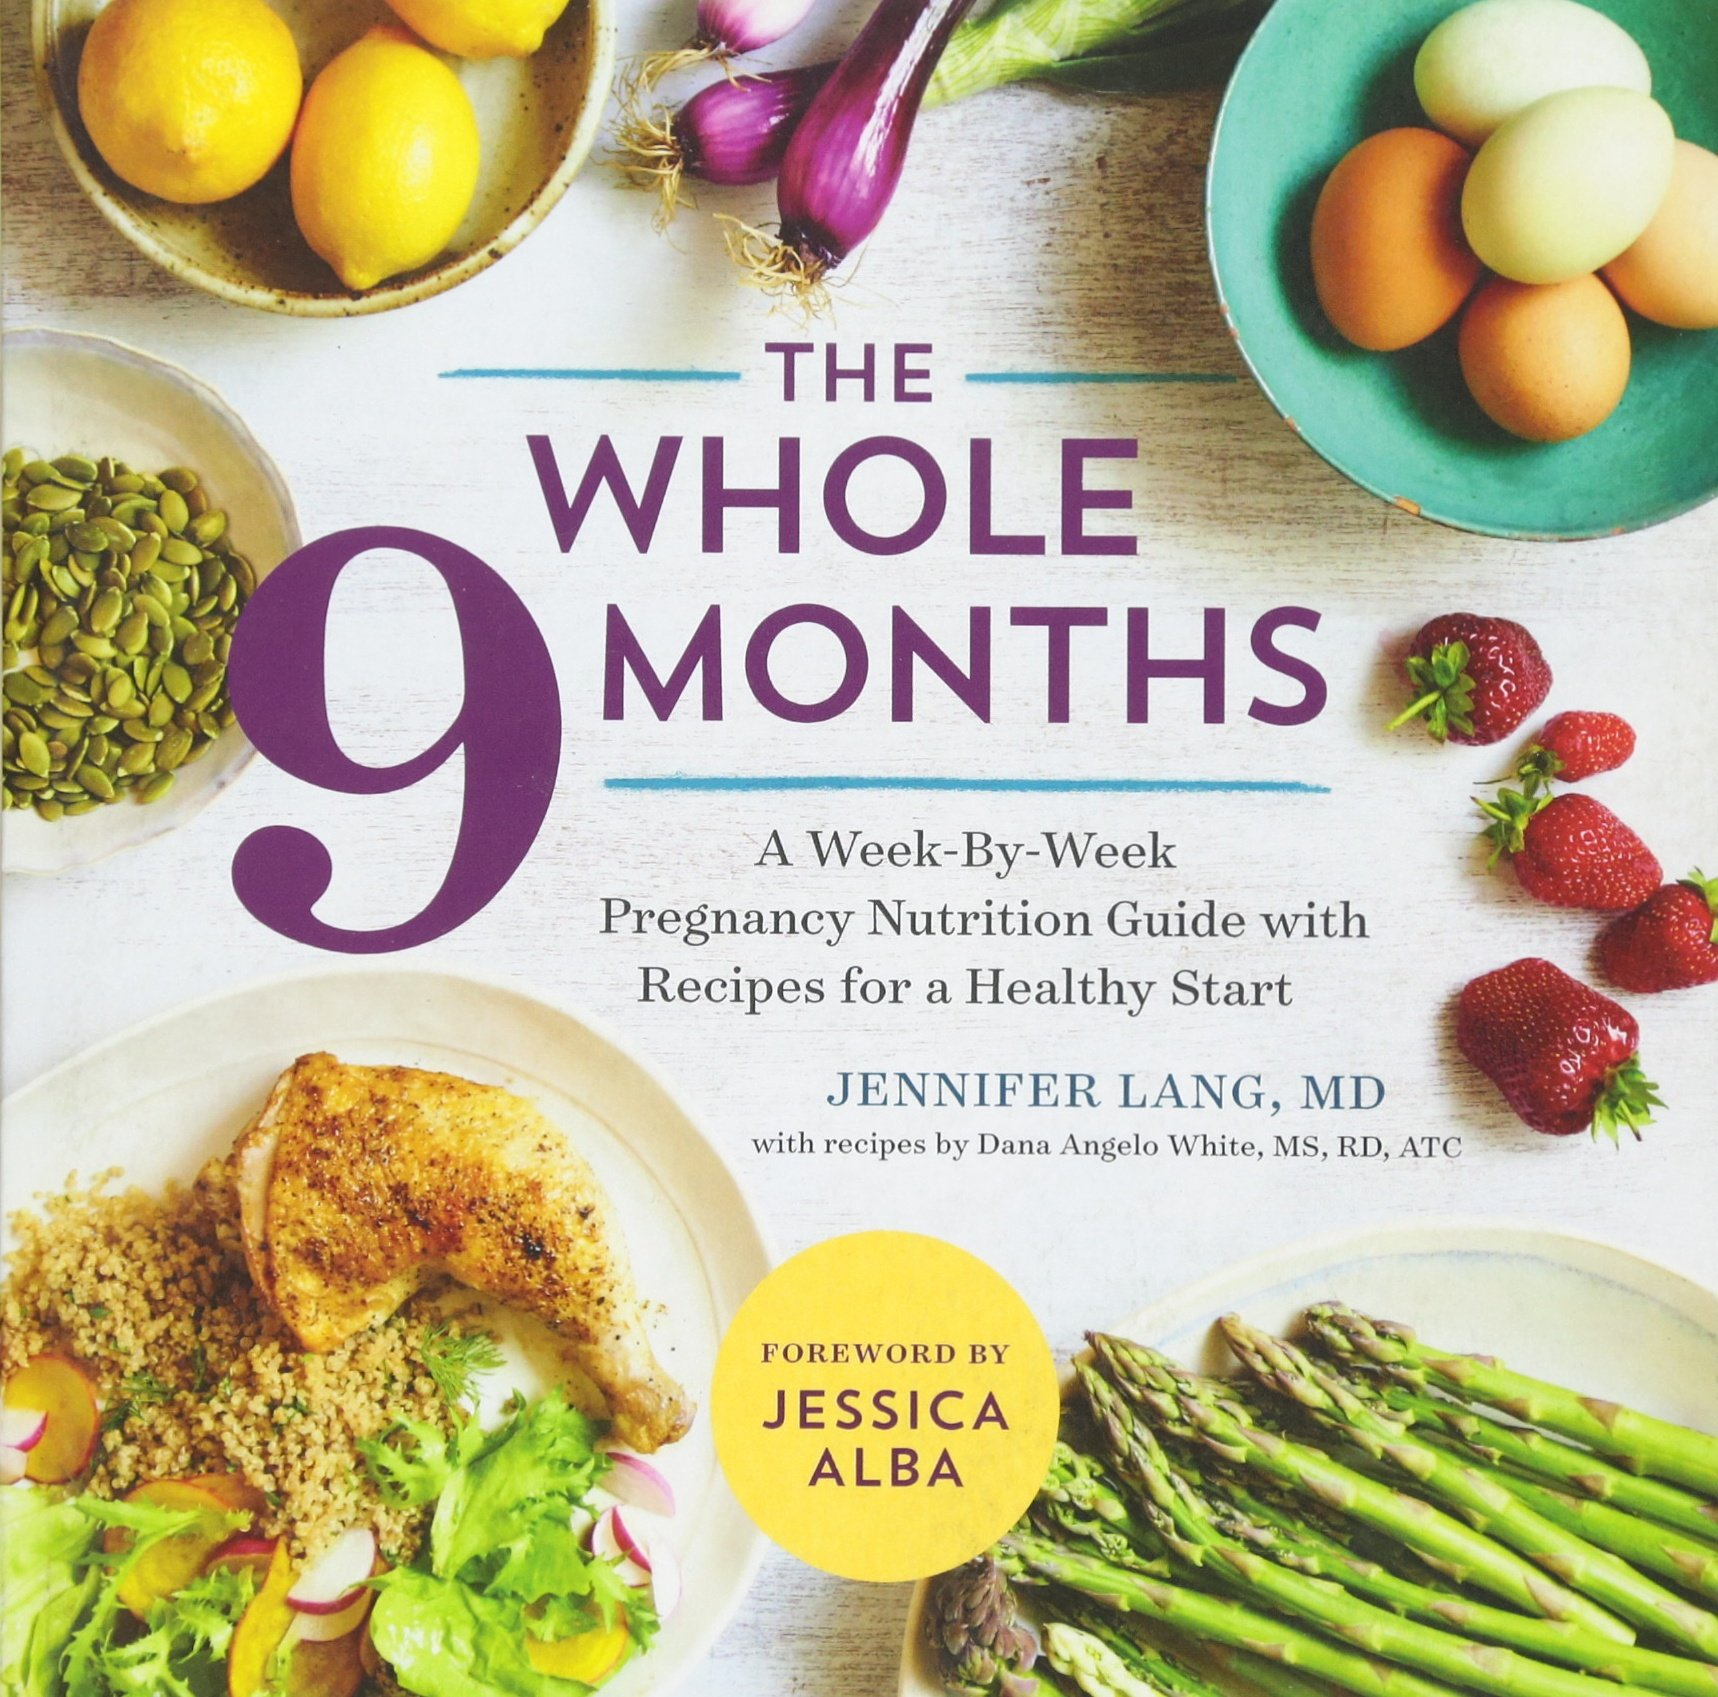 The whole 9 months a week by week pregnancy nutrition guide with the whole 9 months a week by week pregnancy nutrition guide with recipes for a healthy start jennifer lang md dana angelo white ms rd jessica alba forumfinder